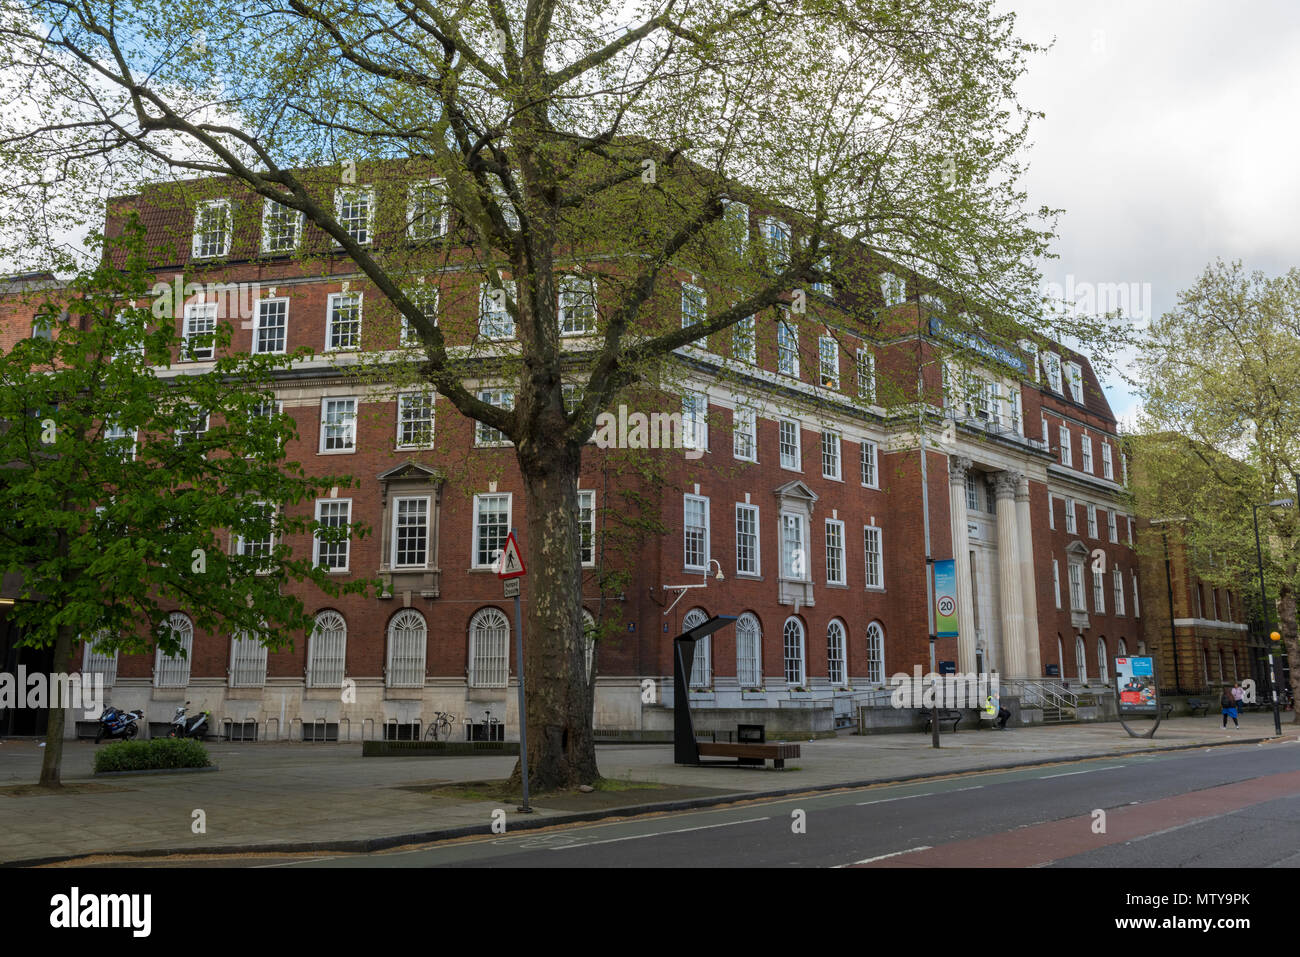 a front view of the london southbank univeristy in early summer. London teaching and further education establishments. london southbank university. - Stock Image